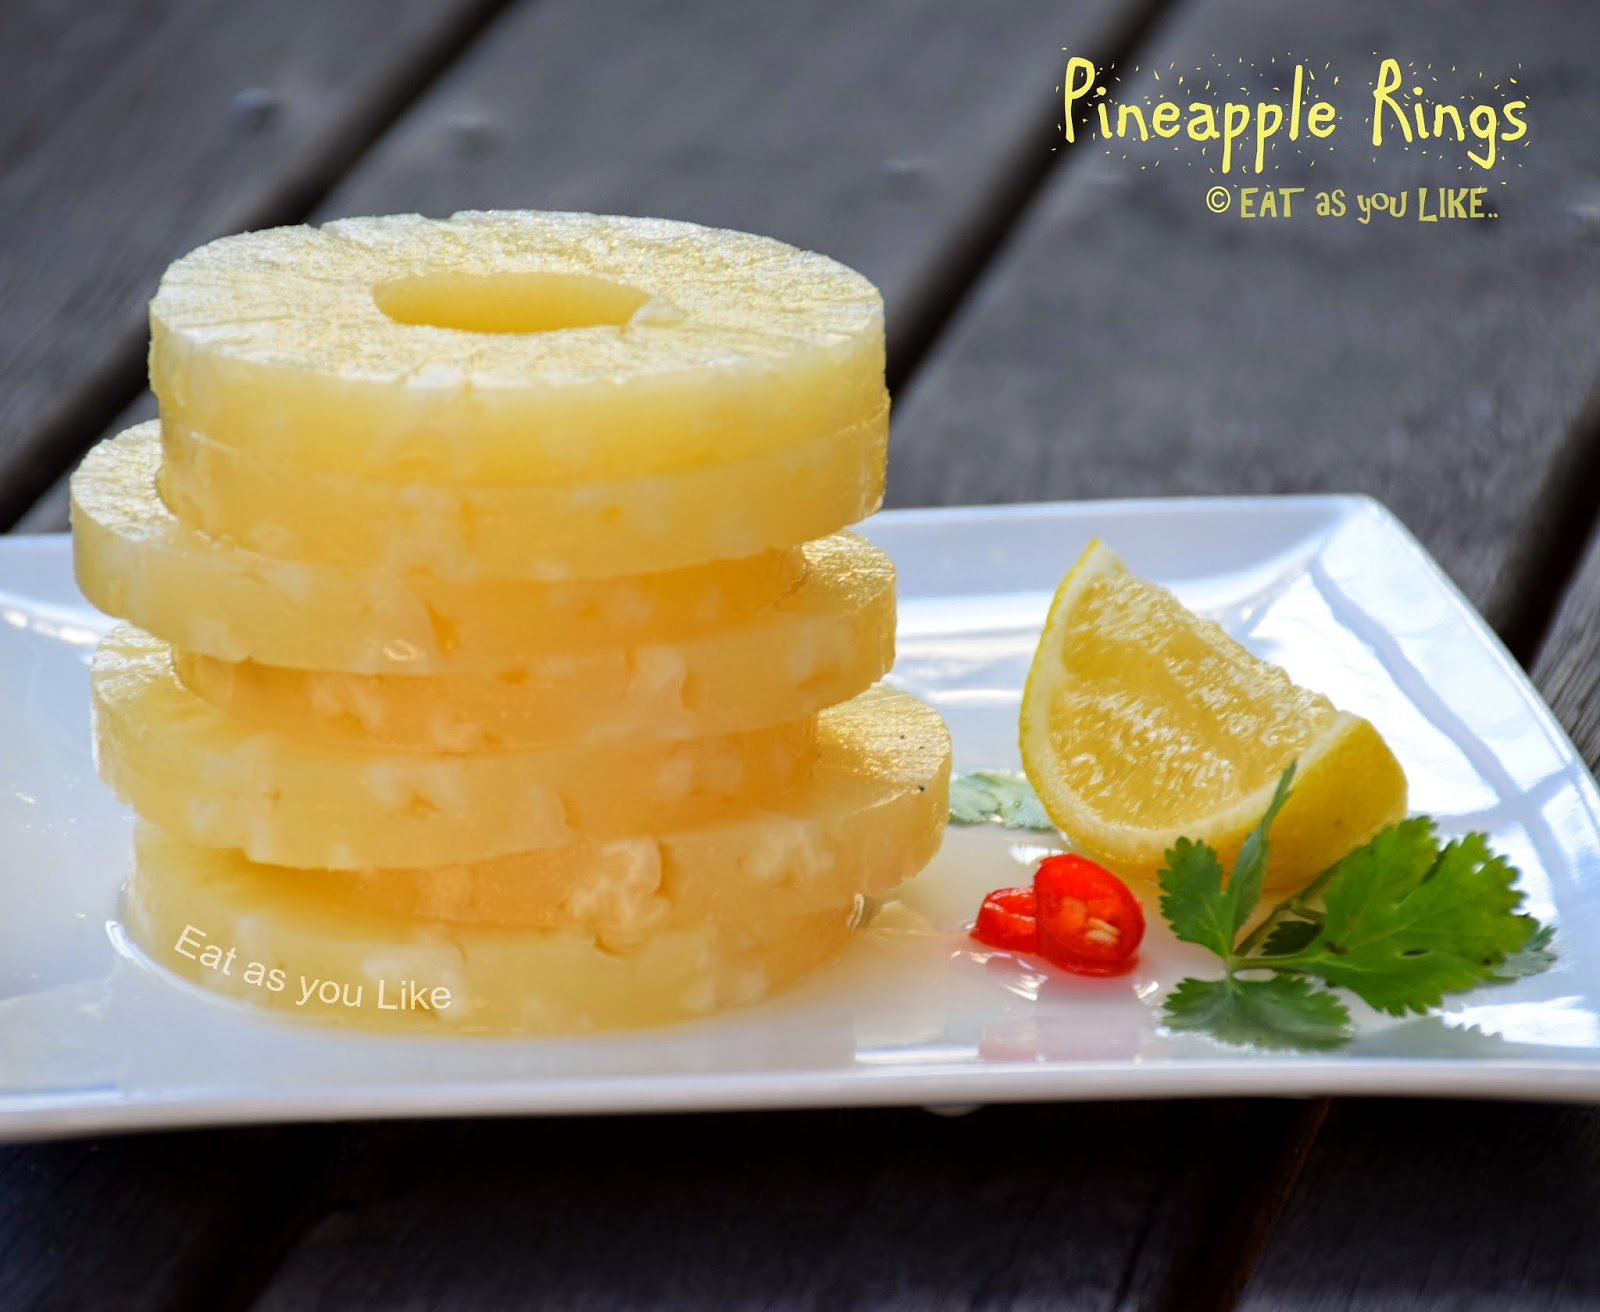 how to cut a whole pineapple into rings